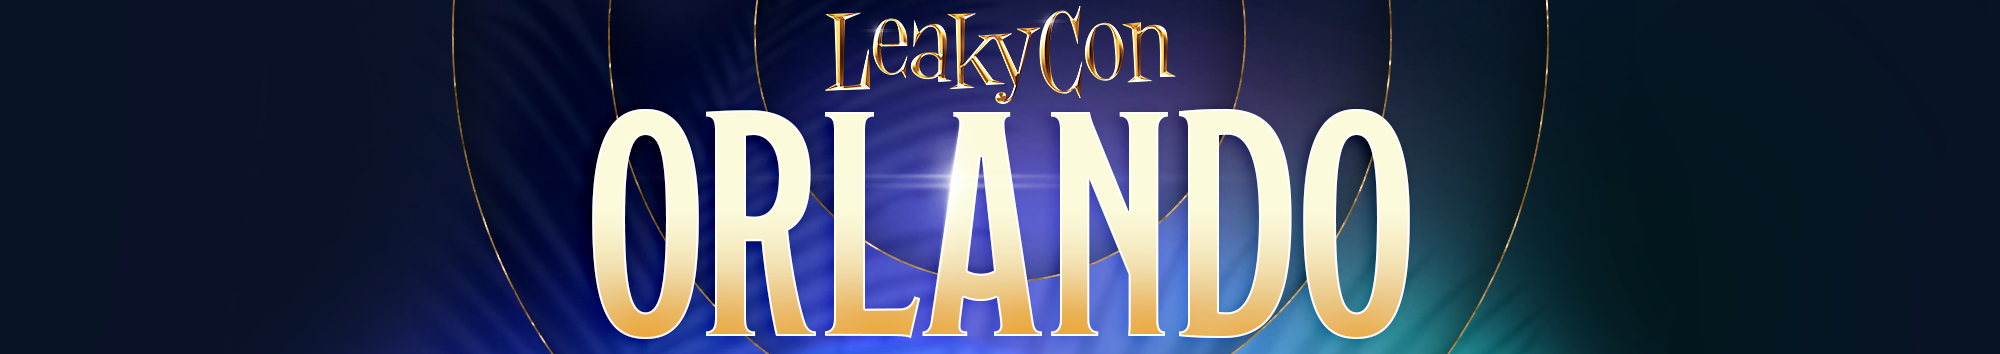 Tickets for LeakyCon 2022: Orlando Add On Experiences in Orlando from ShowClix